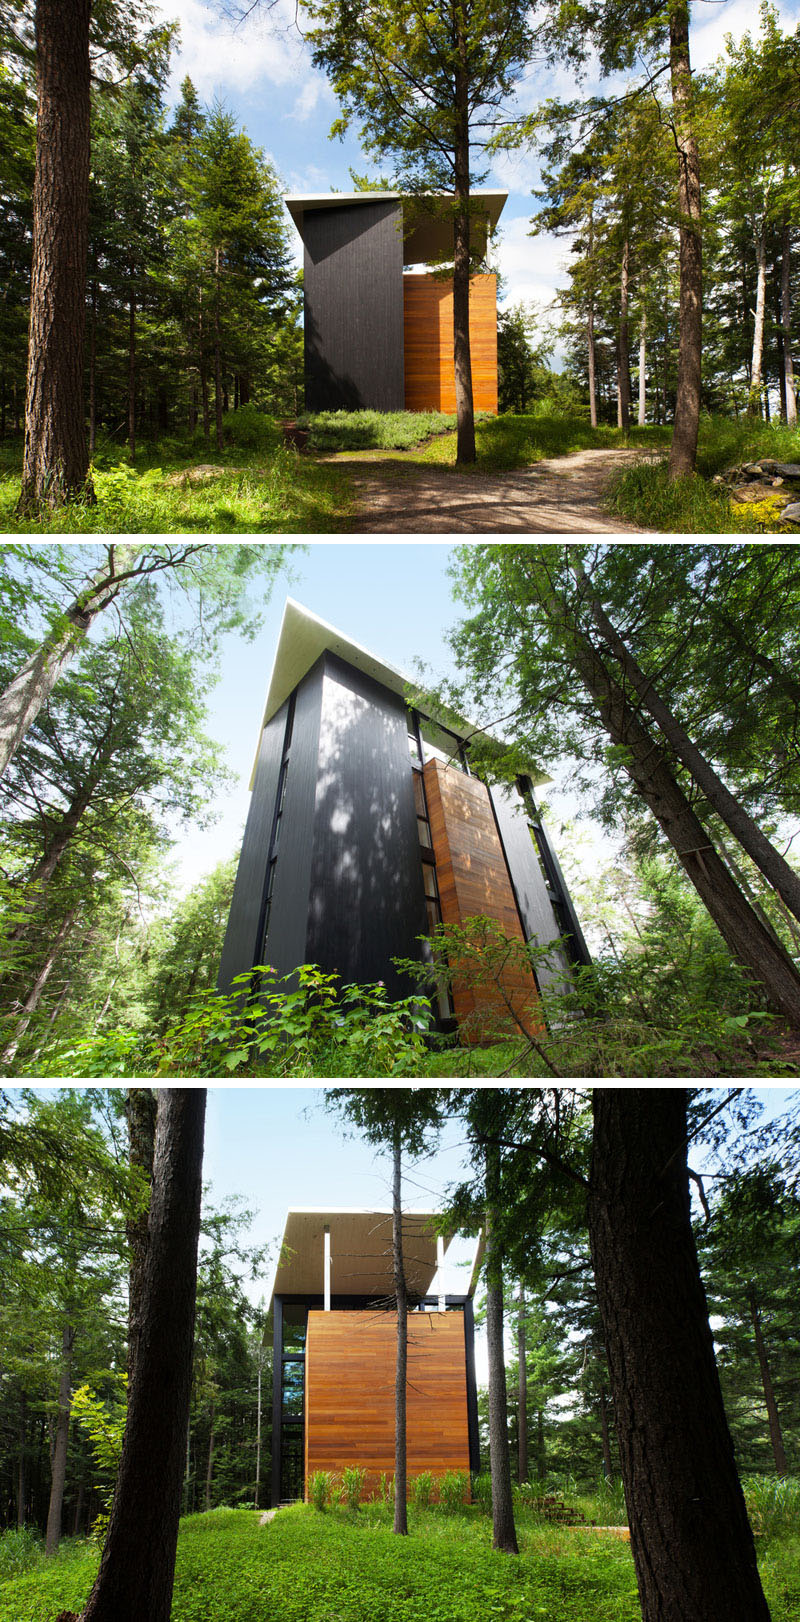 sculptor treehouse luxury iwanttoliveinatreehouse placesyoucouldlive architecture canada